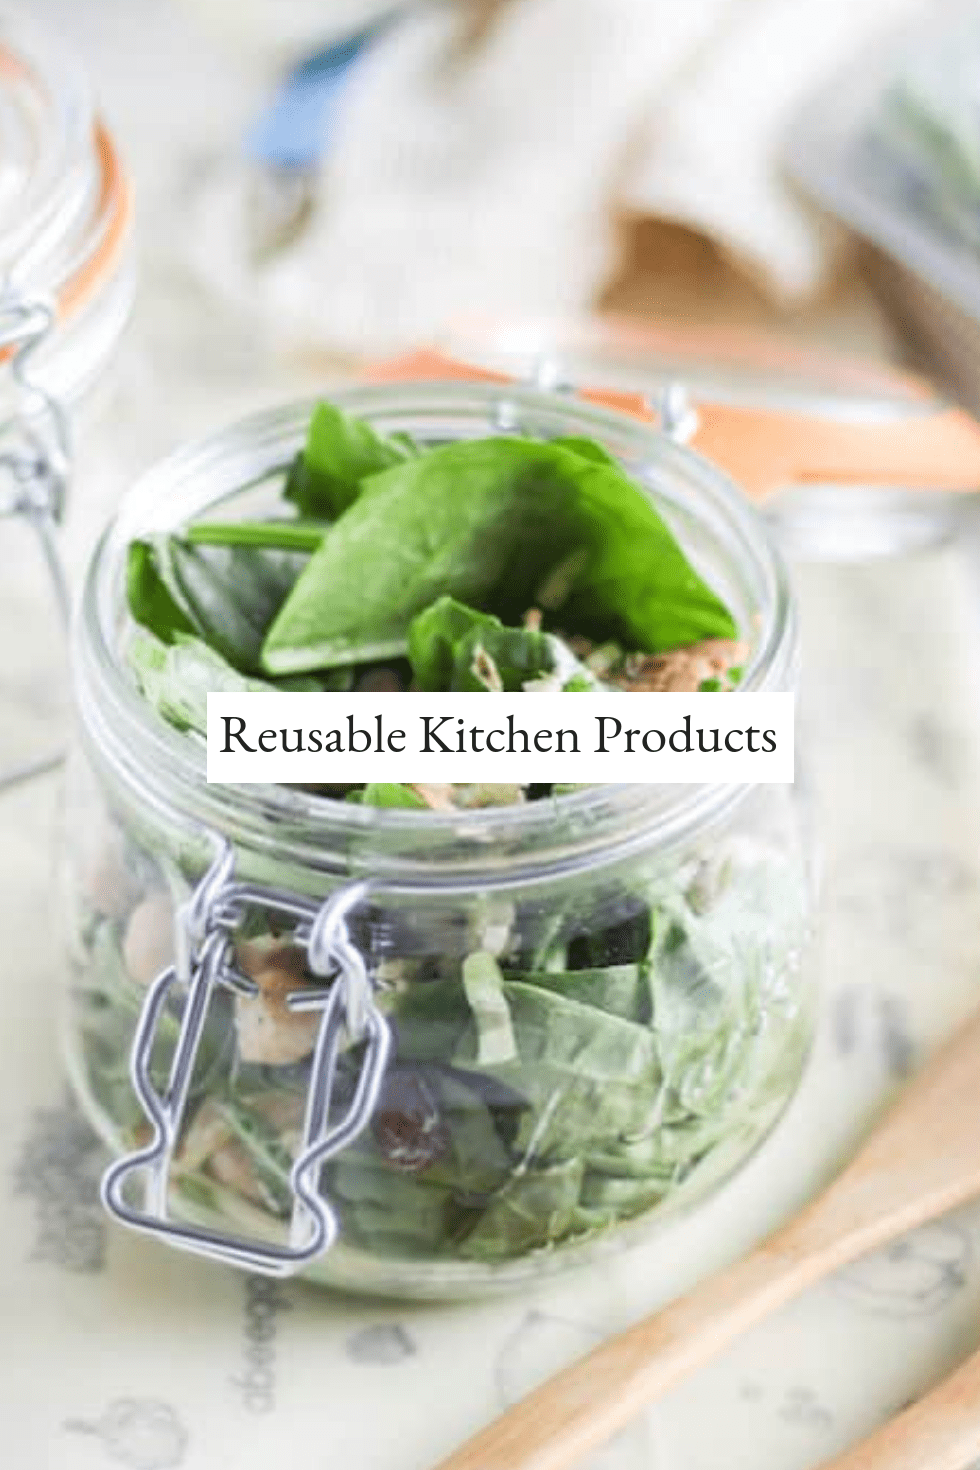 Glass jar filled with salad with bamboo utensils and other reusable kitchen products in background (mesh produce bags, stasher bag, beeswax wraps).